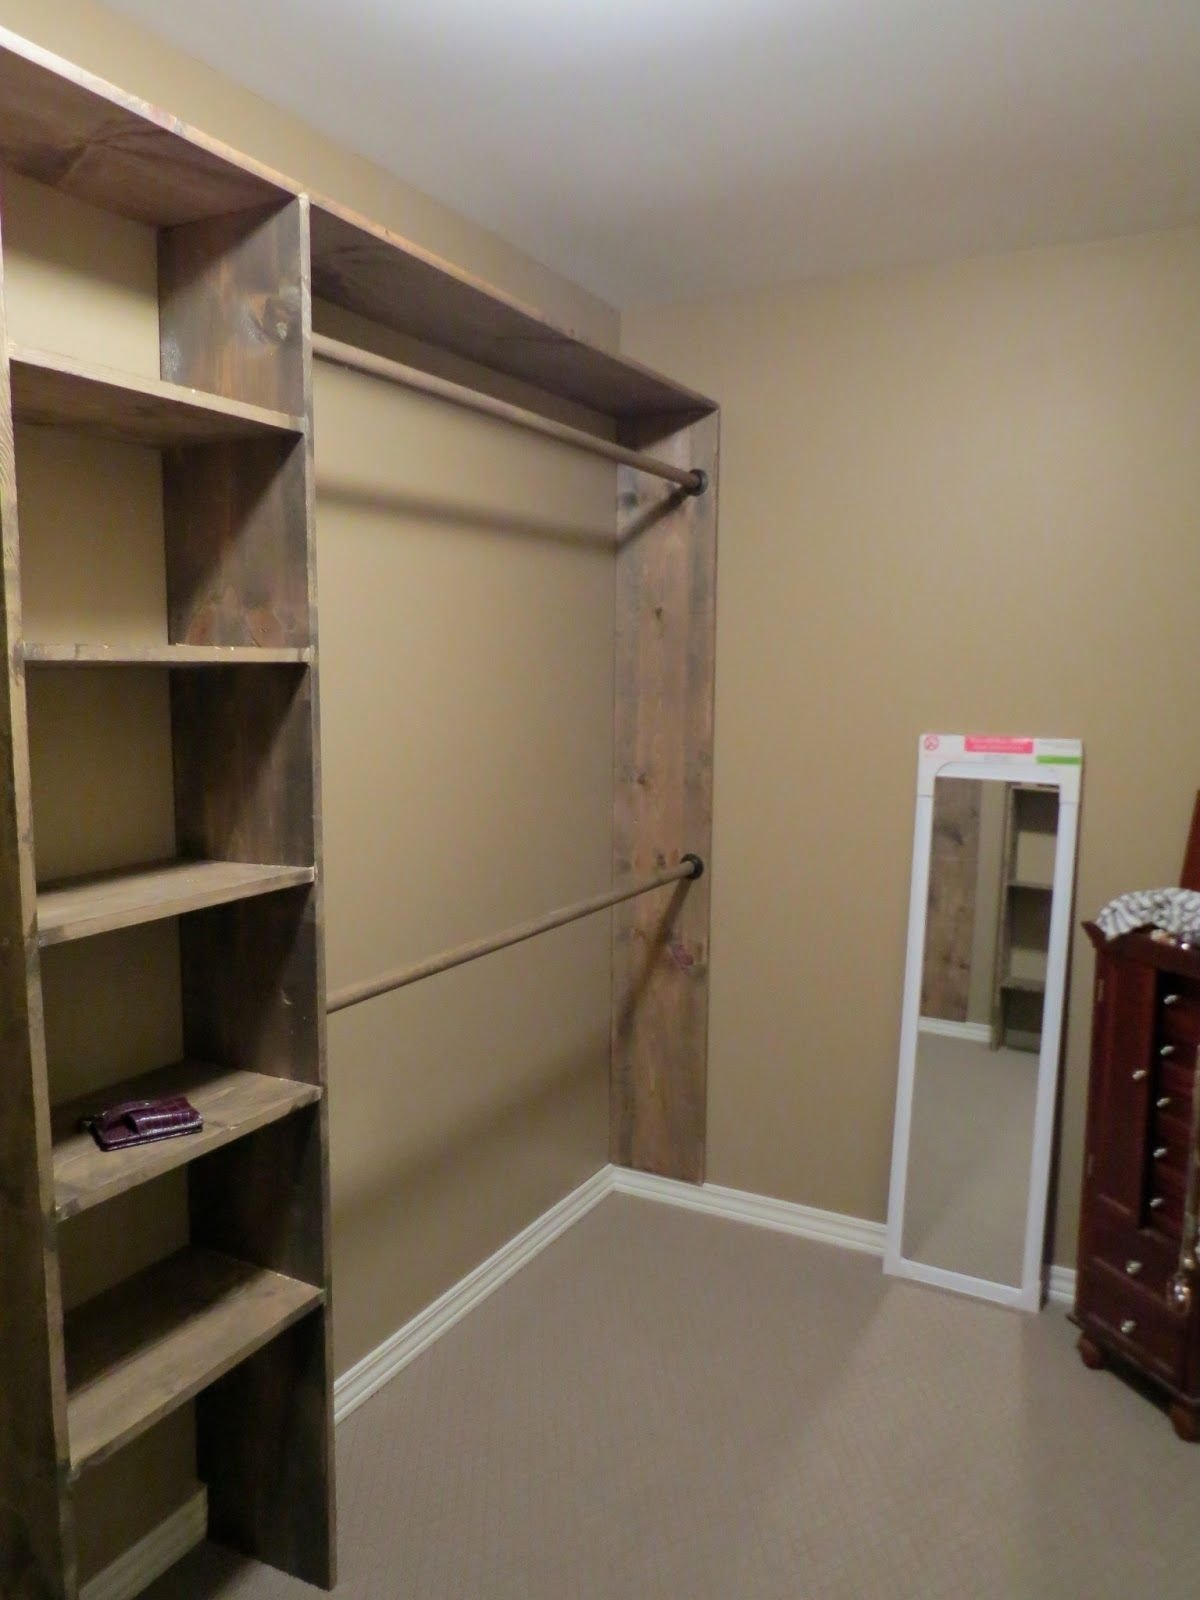 let's just build a house!: walk-in closets: no more living out of